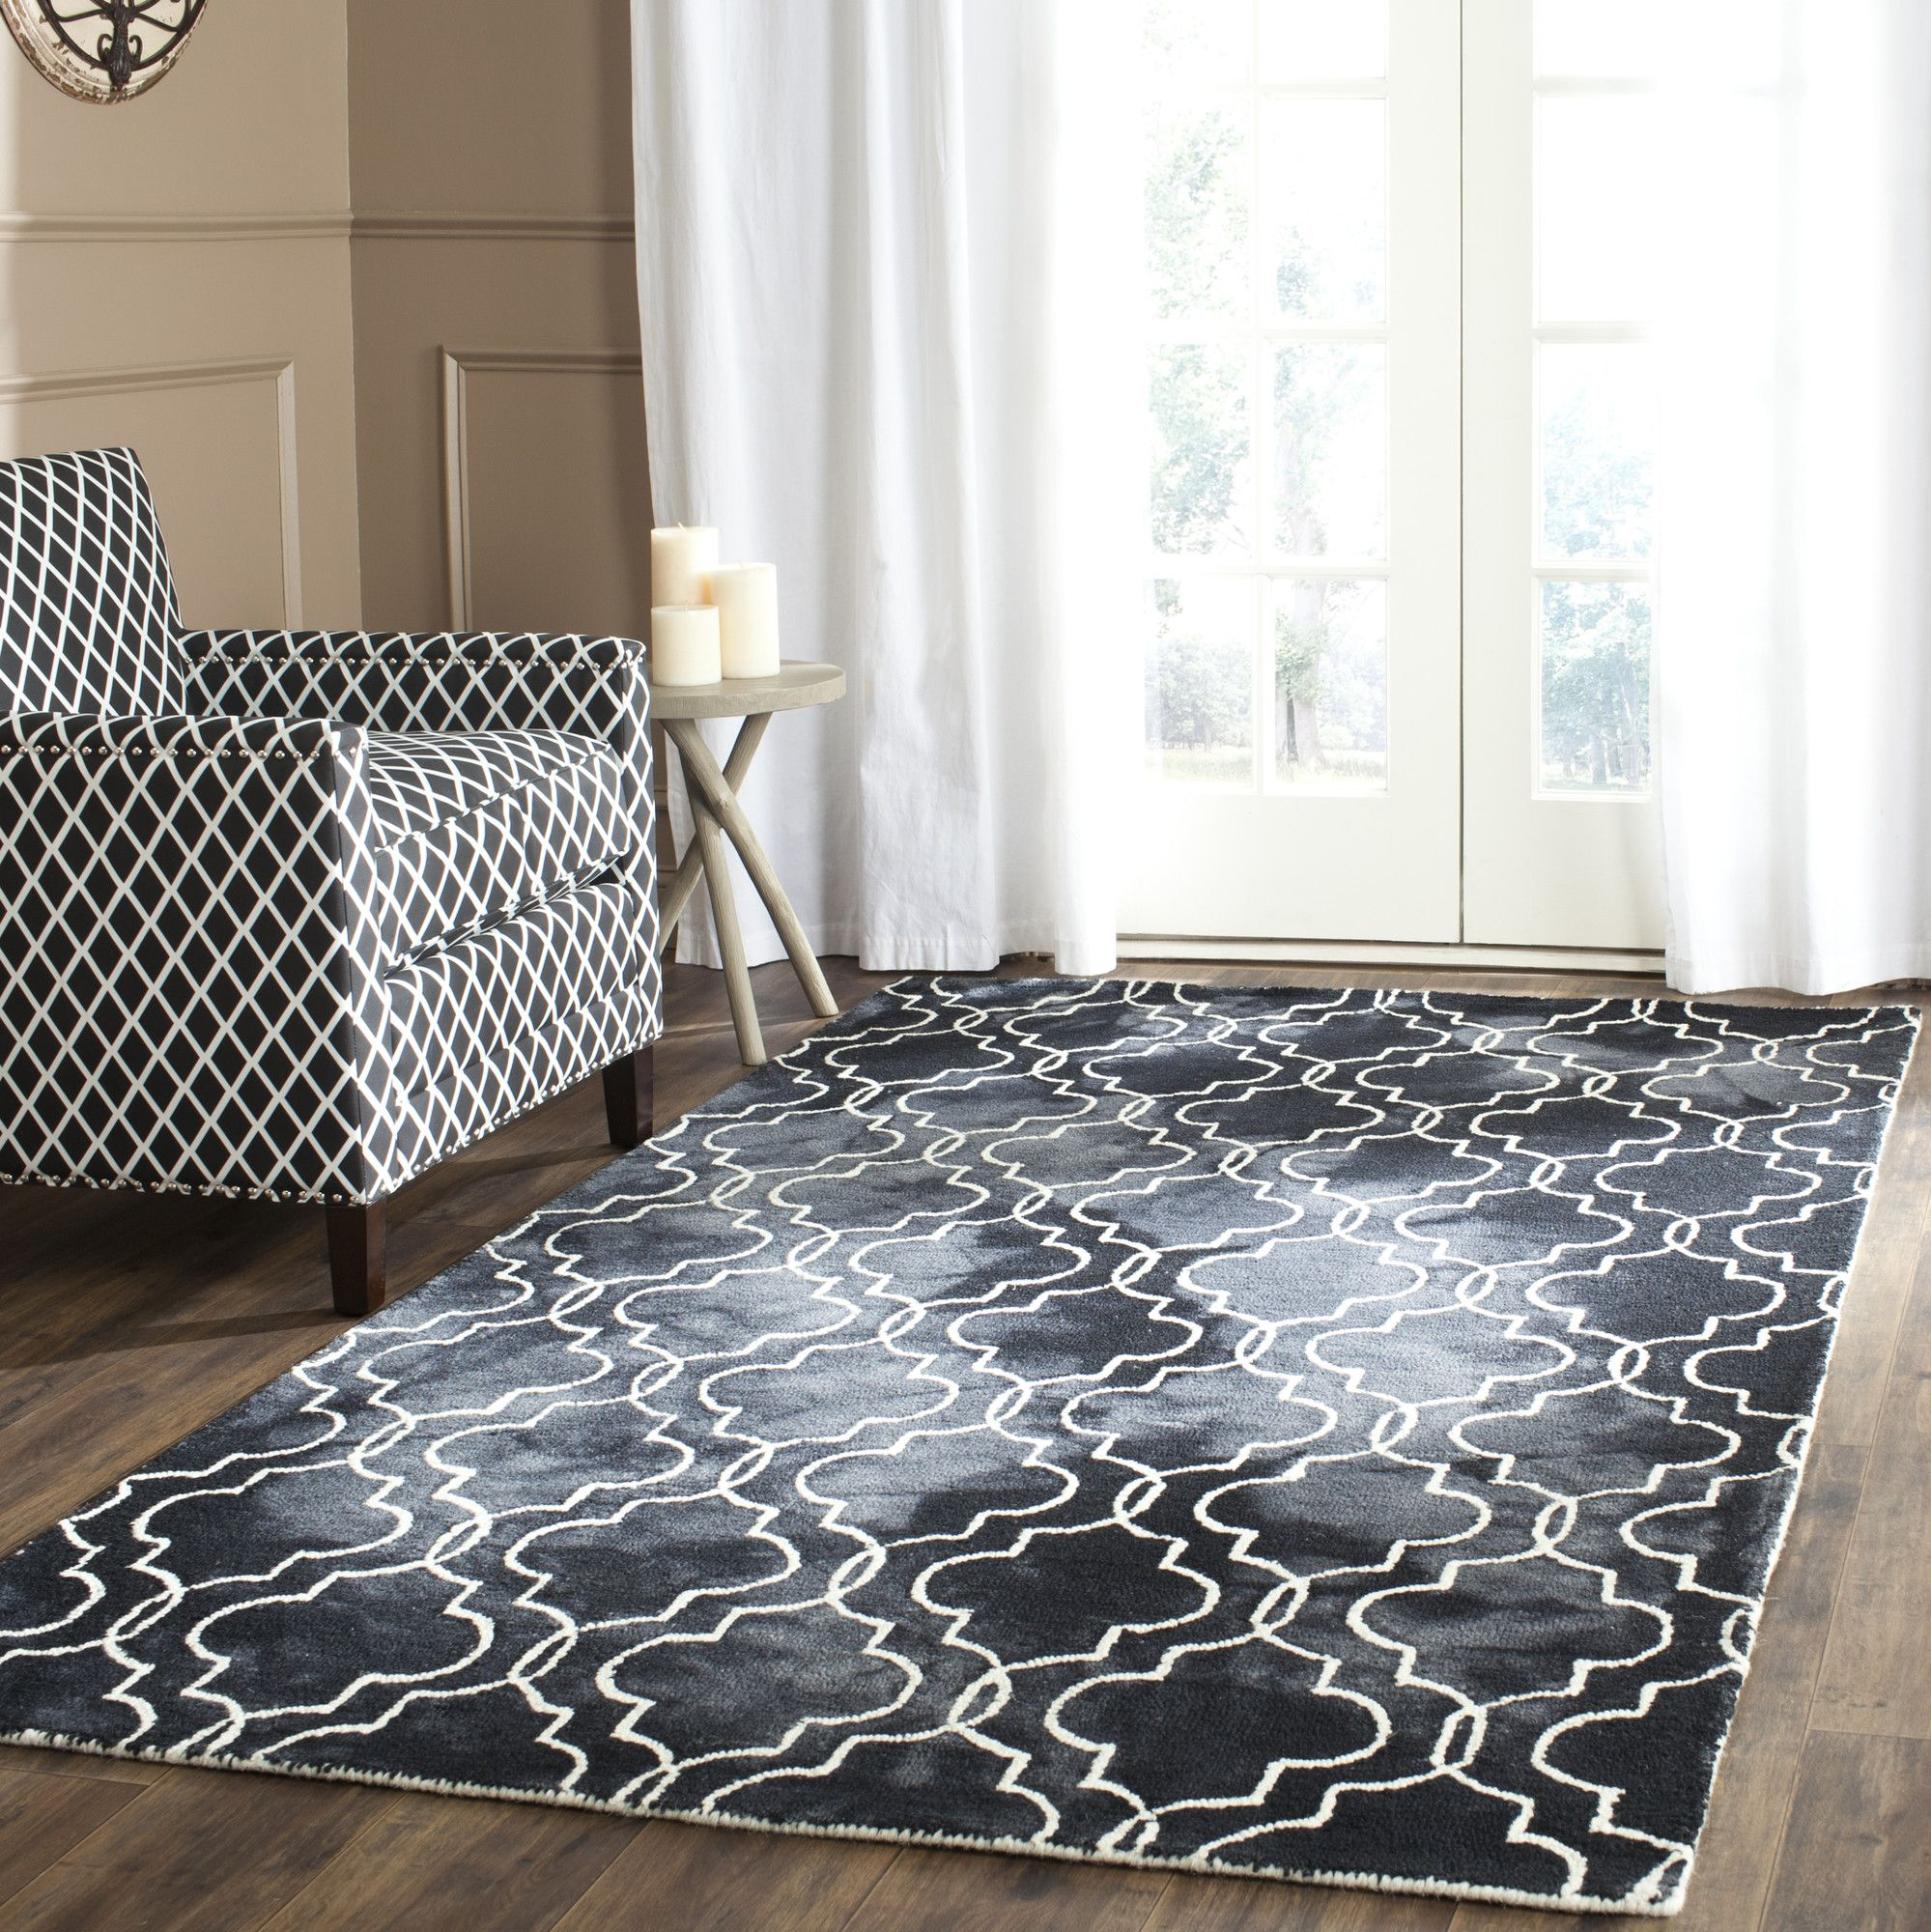 Hand-Tufted Graphite/Ivory Area Rug